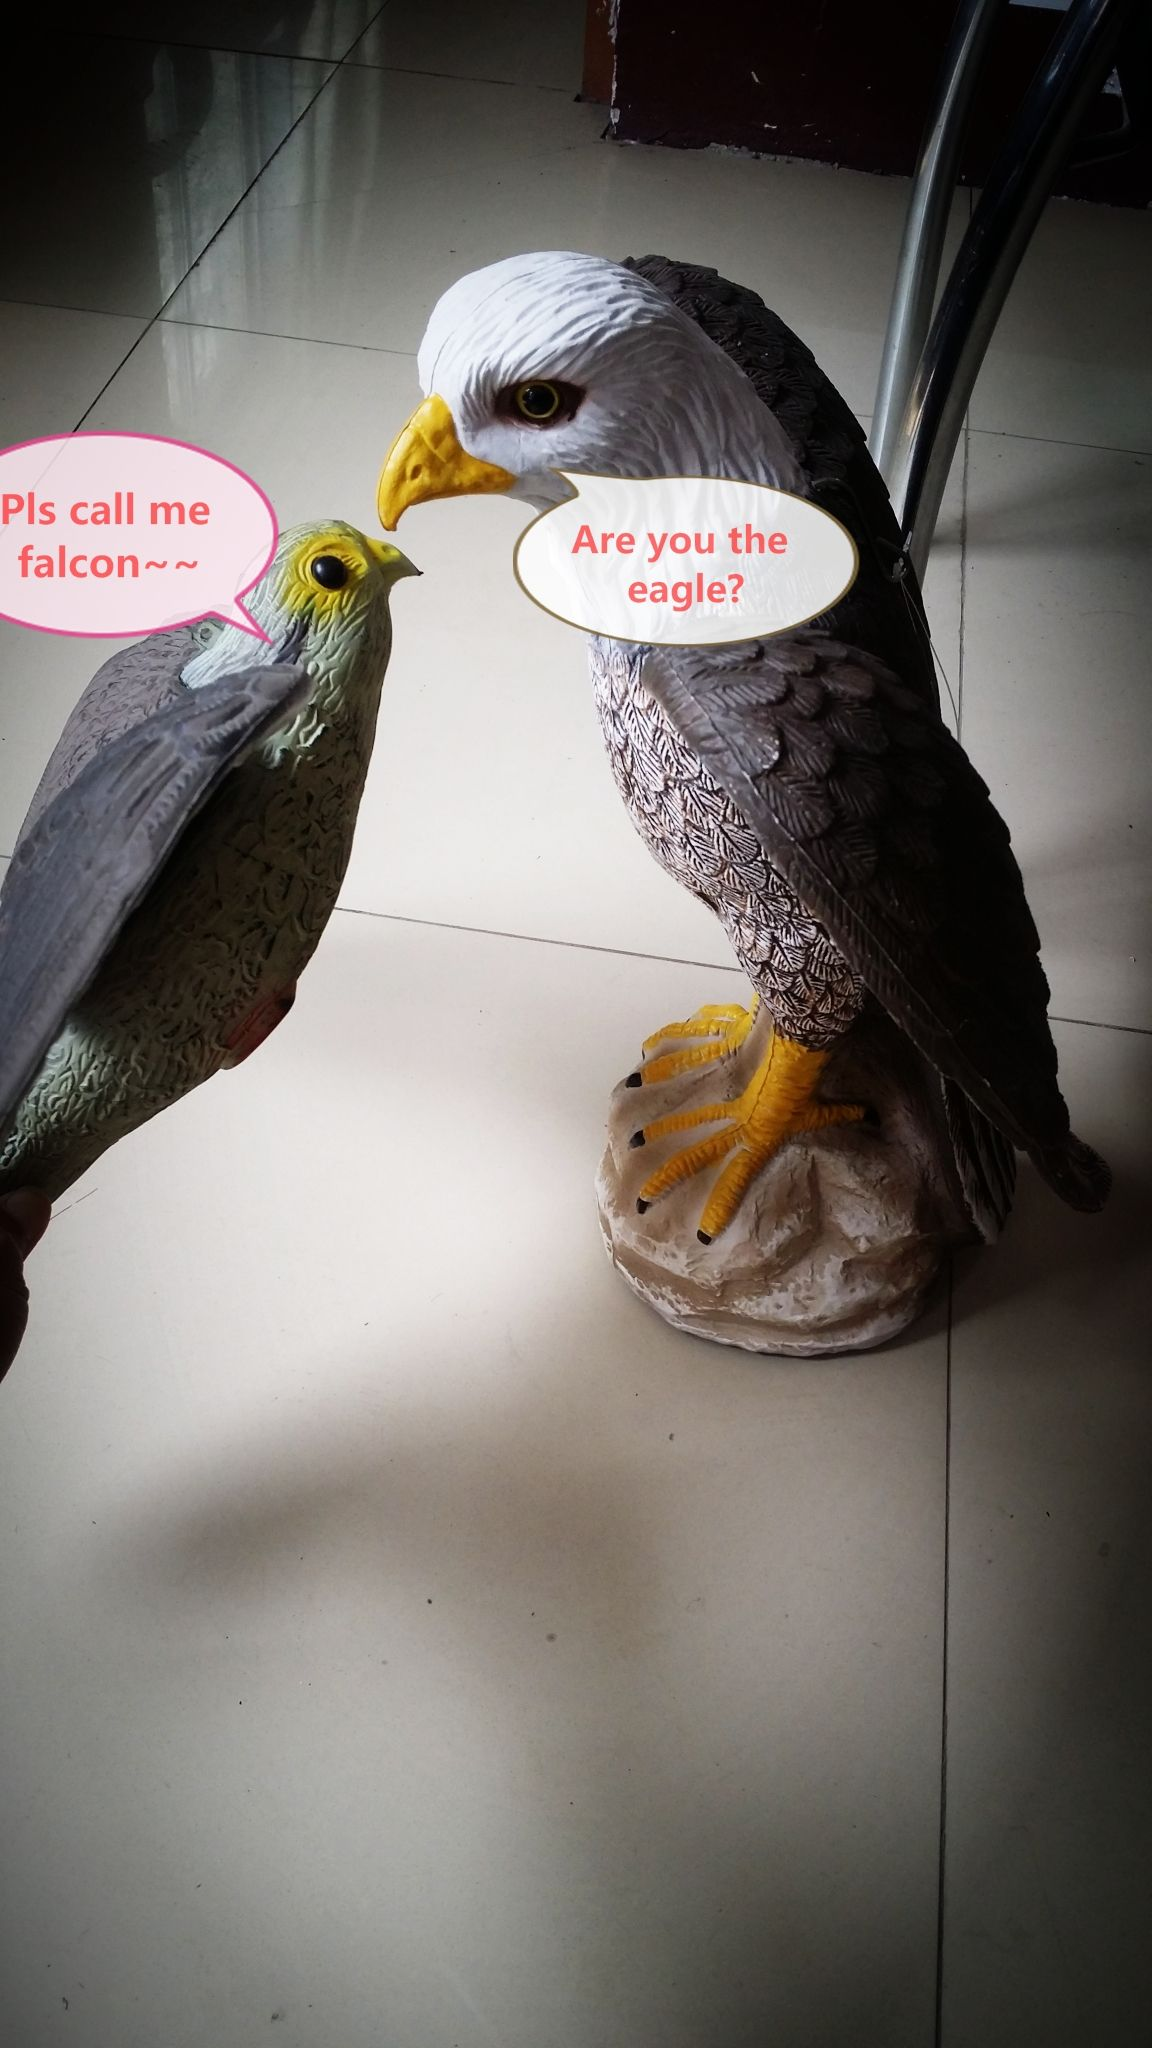 Eagle Decoy For Bird Control More Lifelike Scare The Pest Birds Rodents Away From Your Yard Garden Roof Boat Etc Follo Pest Birds Bird Control Pest Control